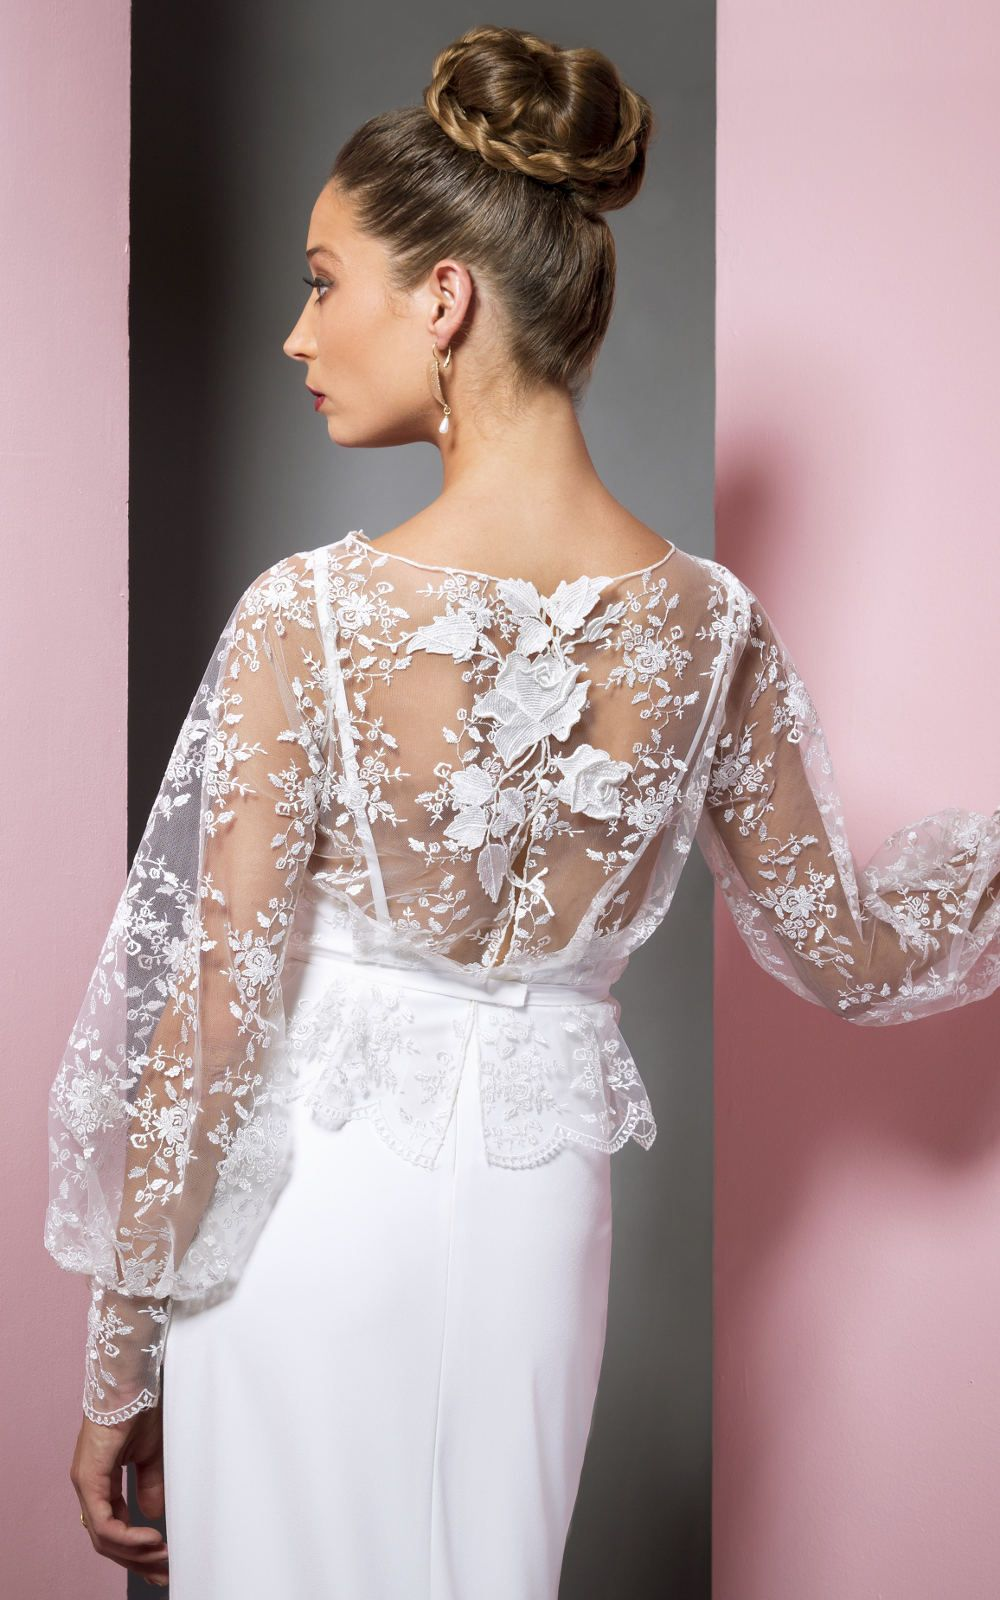 Back detail wedding dress  Gorgeous lace back detail Rene wedding dress by Petite Lumiere